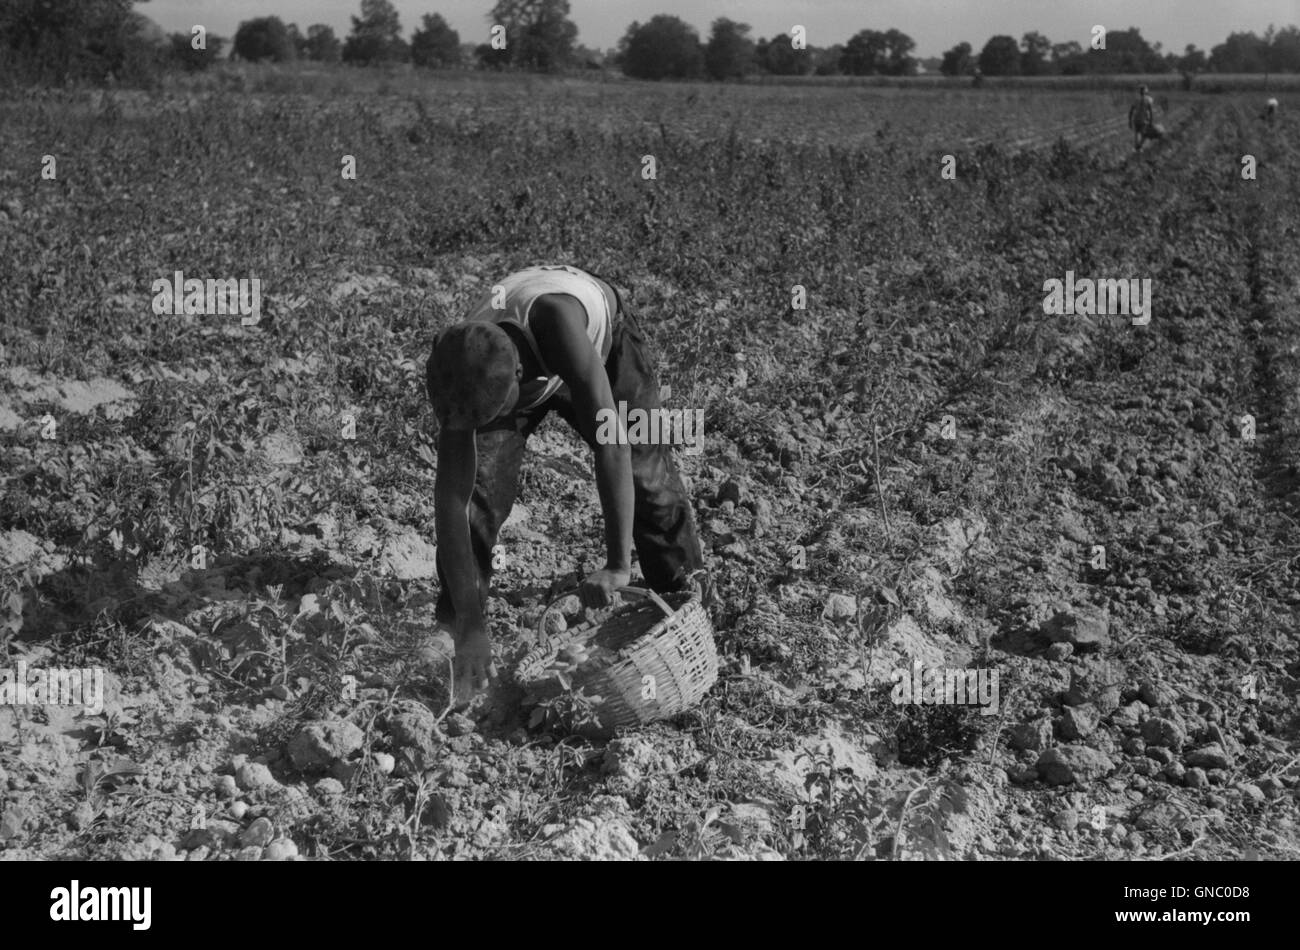 Man Harvesting Potatoes, Jefferson County, Kentucky, USA, Marion Post Wolcott for Farm Security Administration, Stock Photo